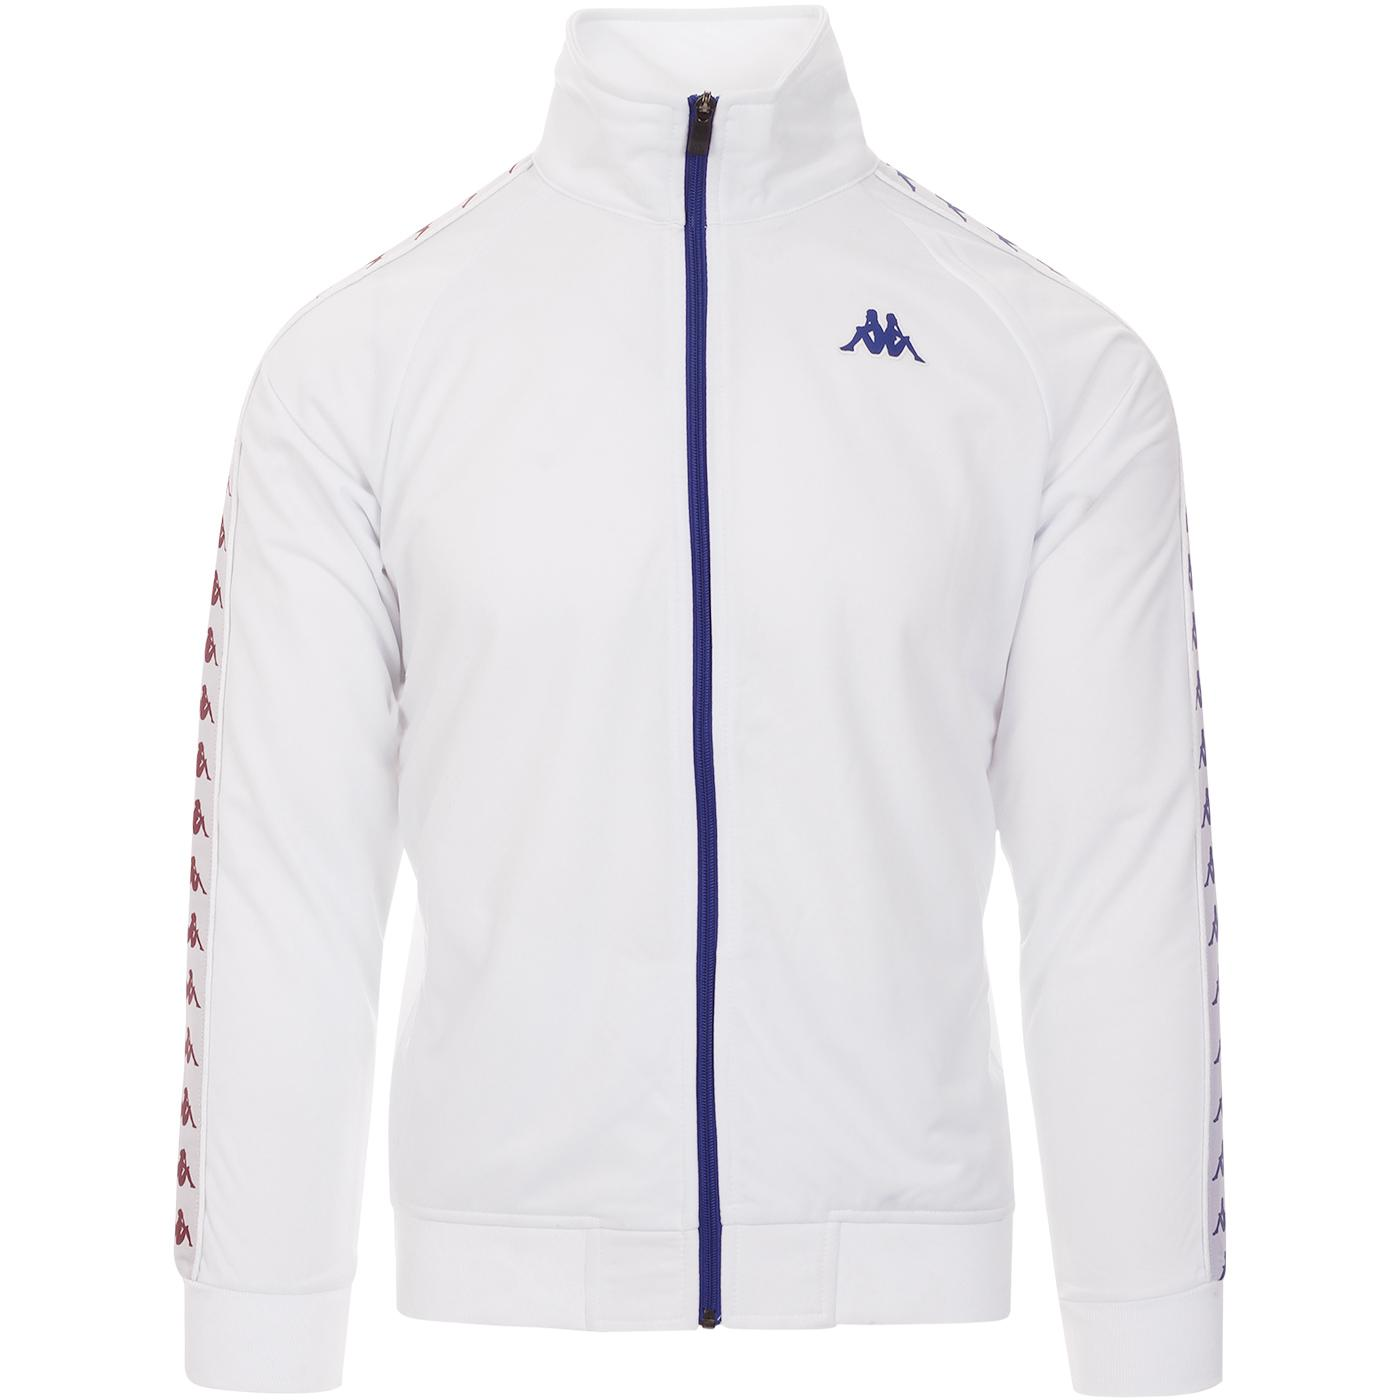 Anniston Banda 222 KAPPA Retro Track Jacket WHITE